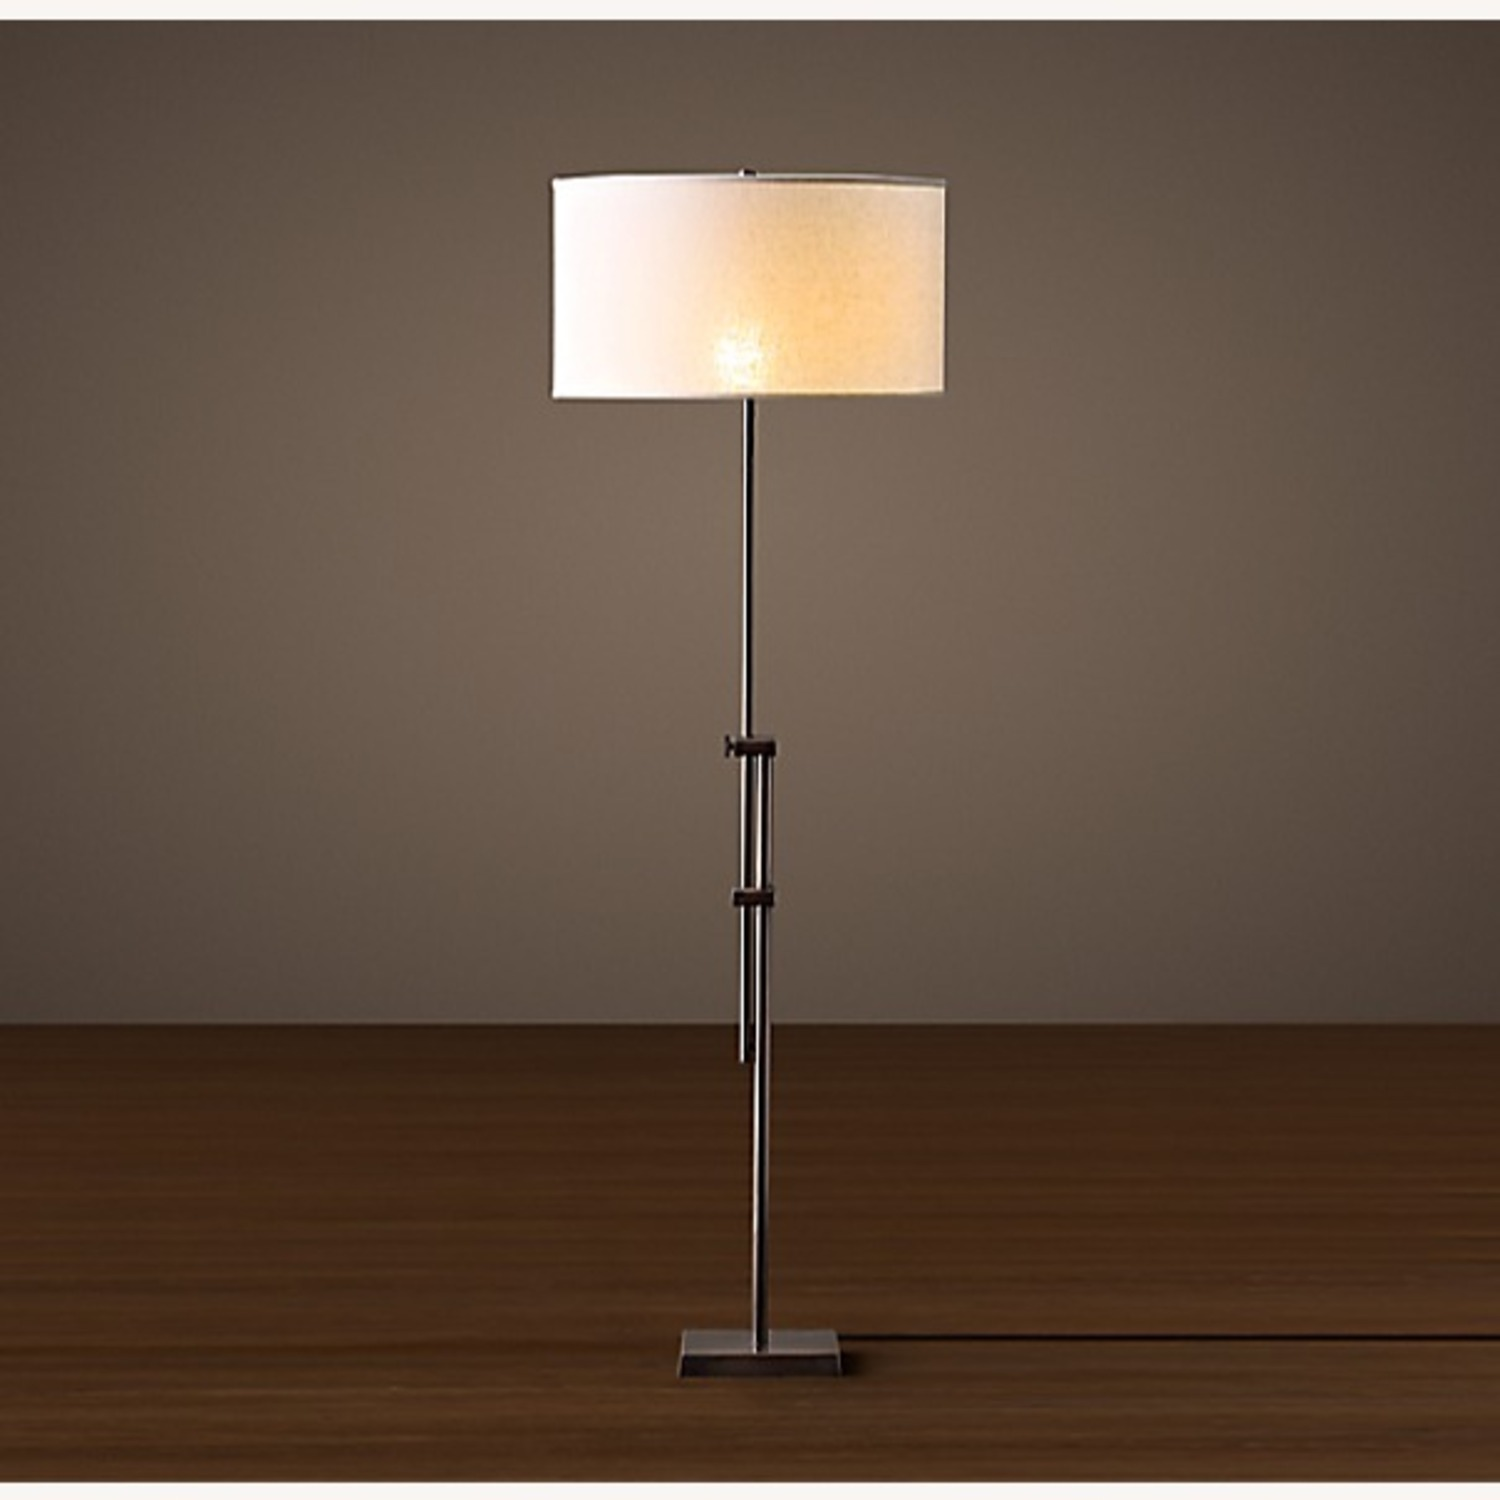 Restoration Hardware Parallel Floor Lamp - image-0